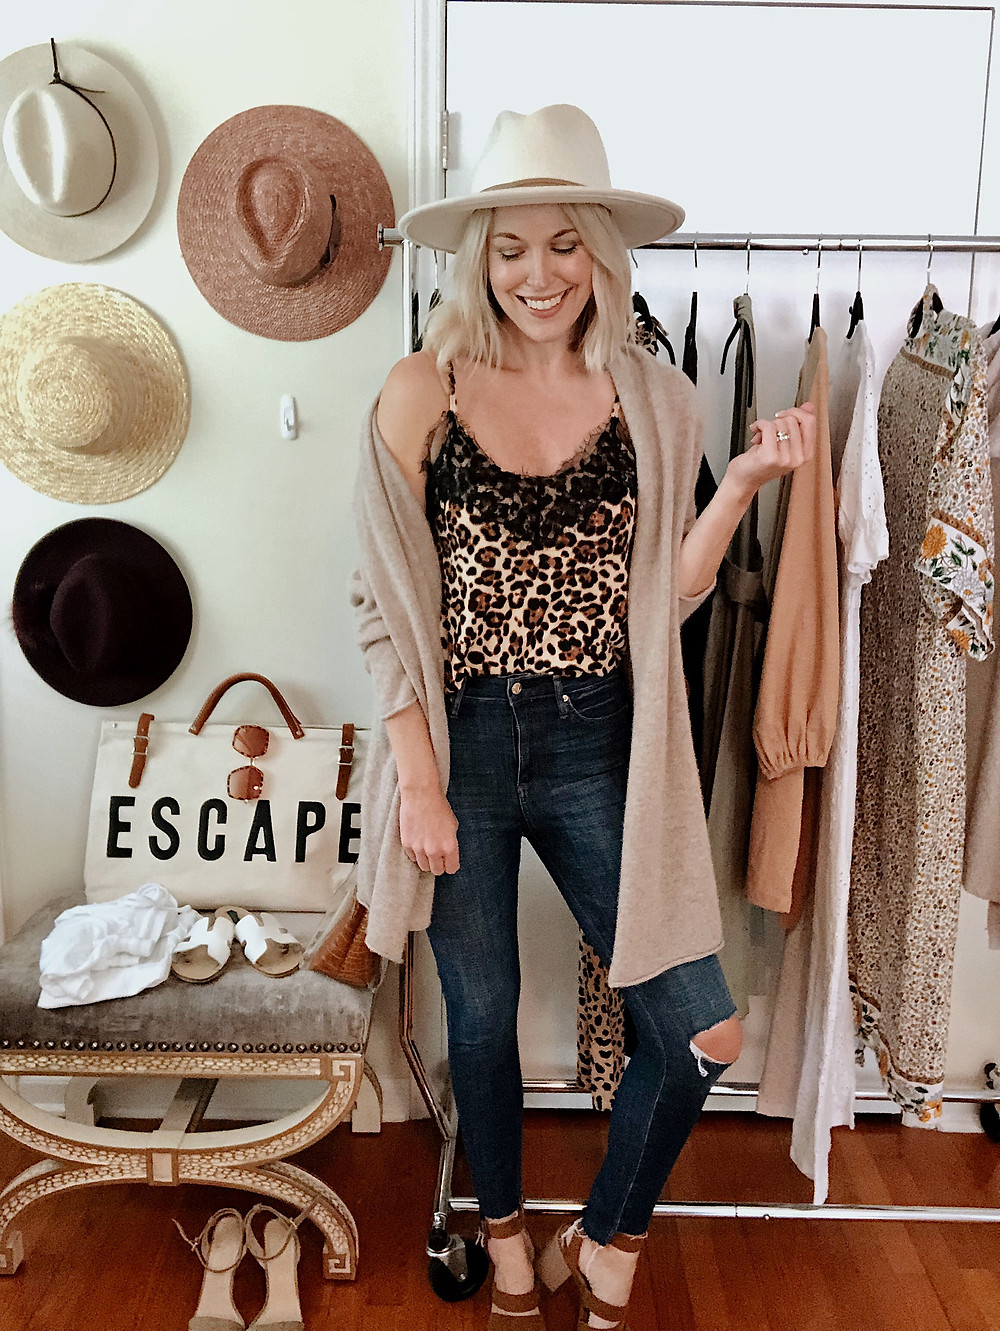 Travel outfit to Asheville NC, leopard camisole, beige cardigan sweater, high waist skinny jeans, rancher hat, style blogger, everyday style